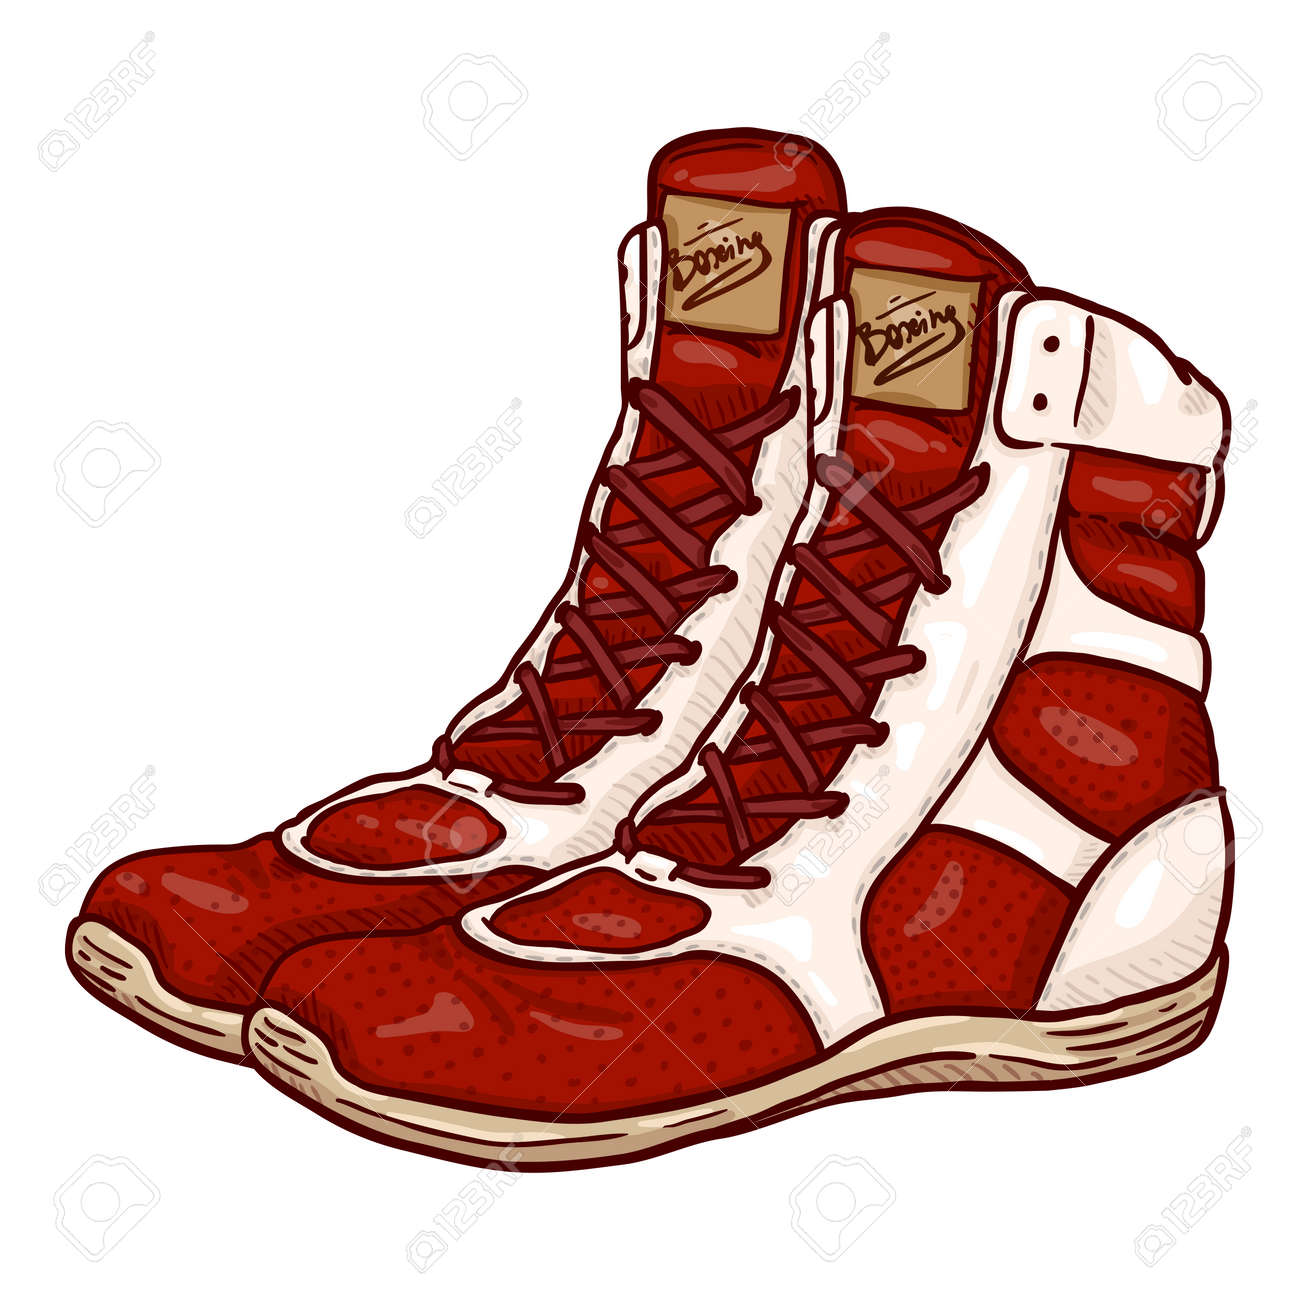 Vector Cartoon Red Boxing Shoes Illustration - 168798655